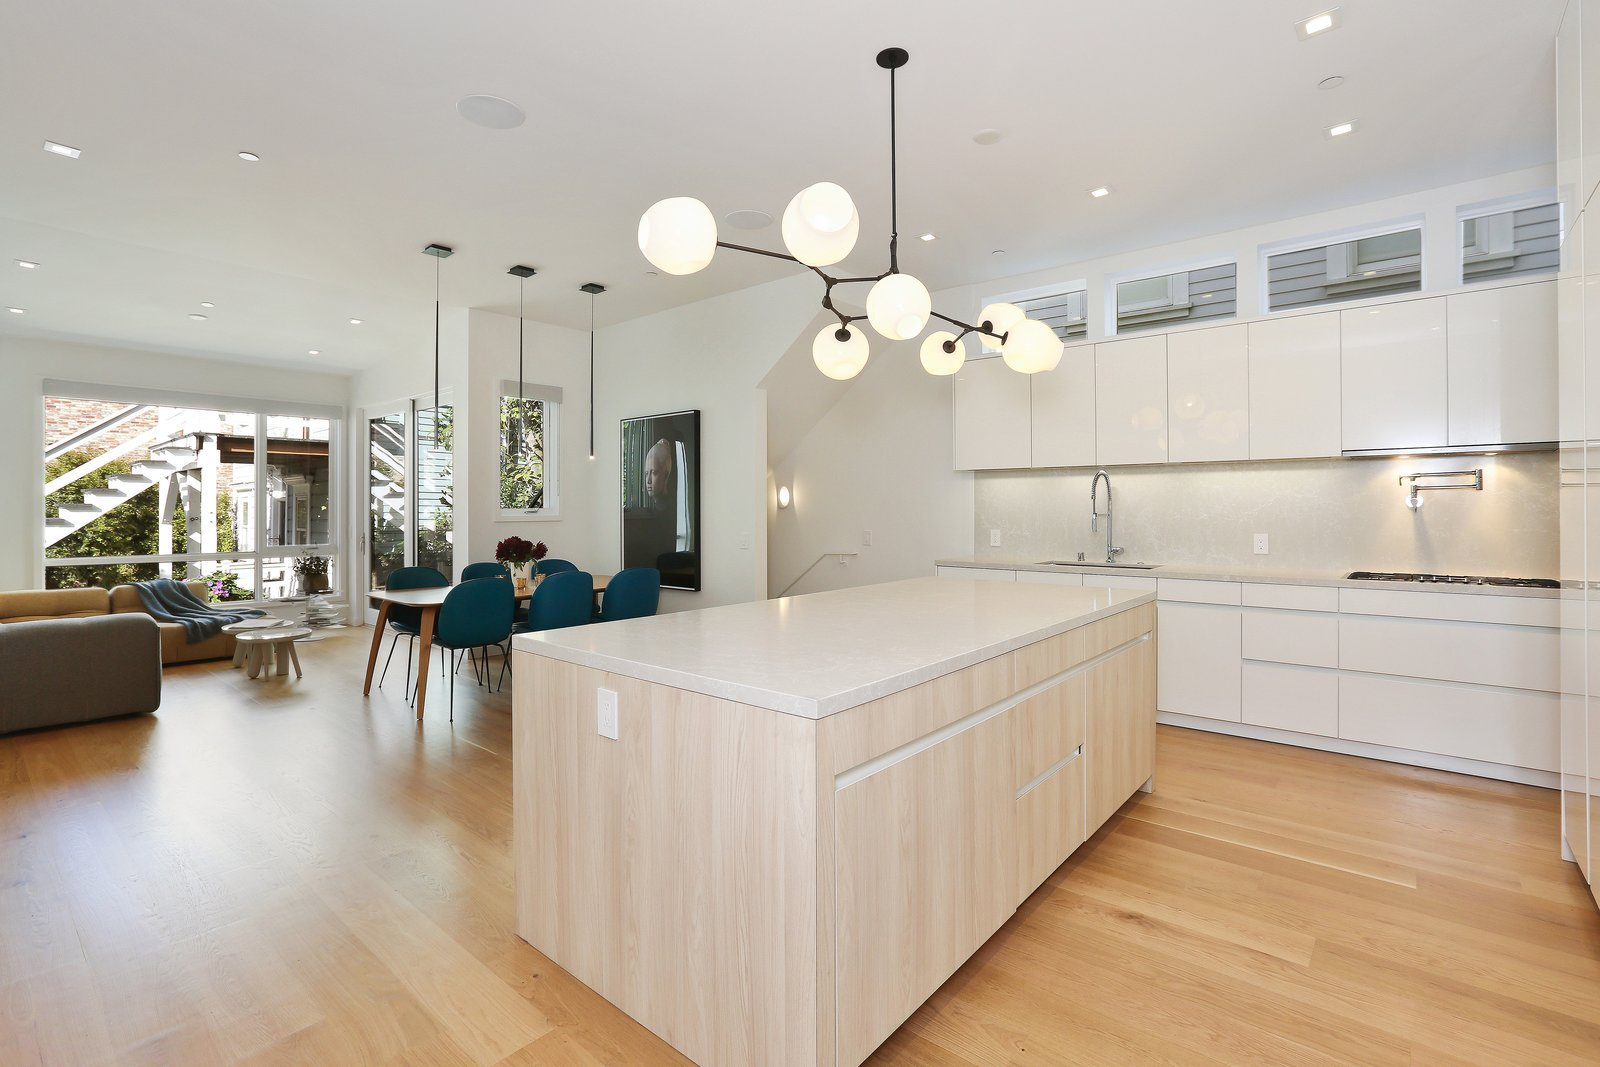 kitchen  Lower Pacific Heights by patrick perez/designpad architecture